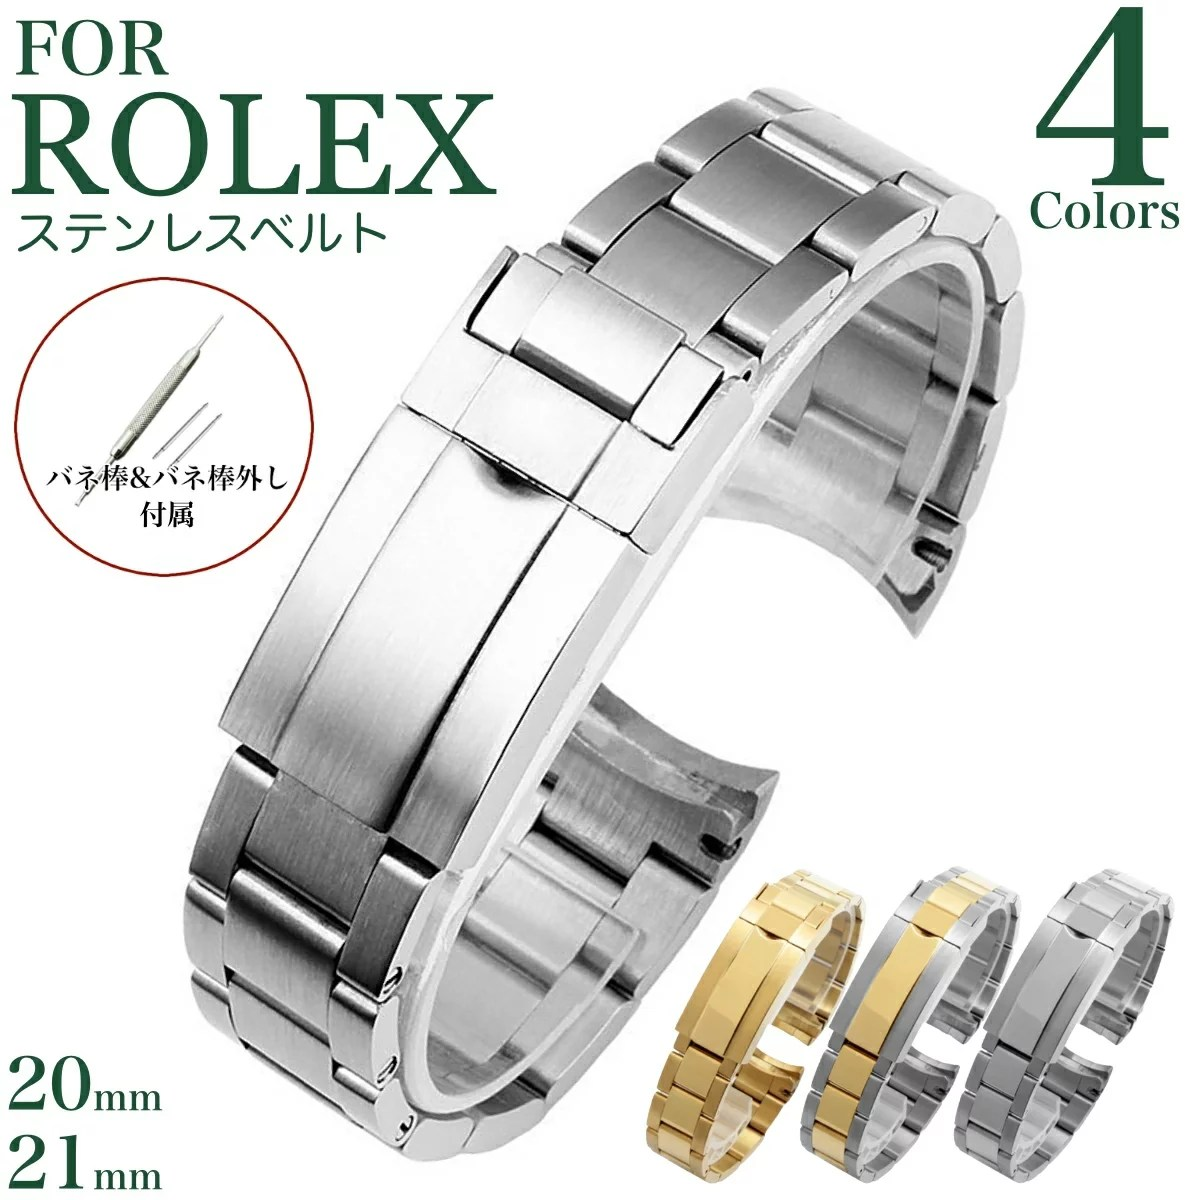 【for ROLEX】 取り付け幅 20mm 21mm ステ